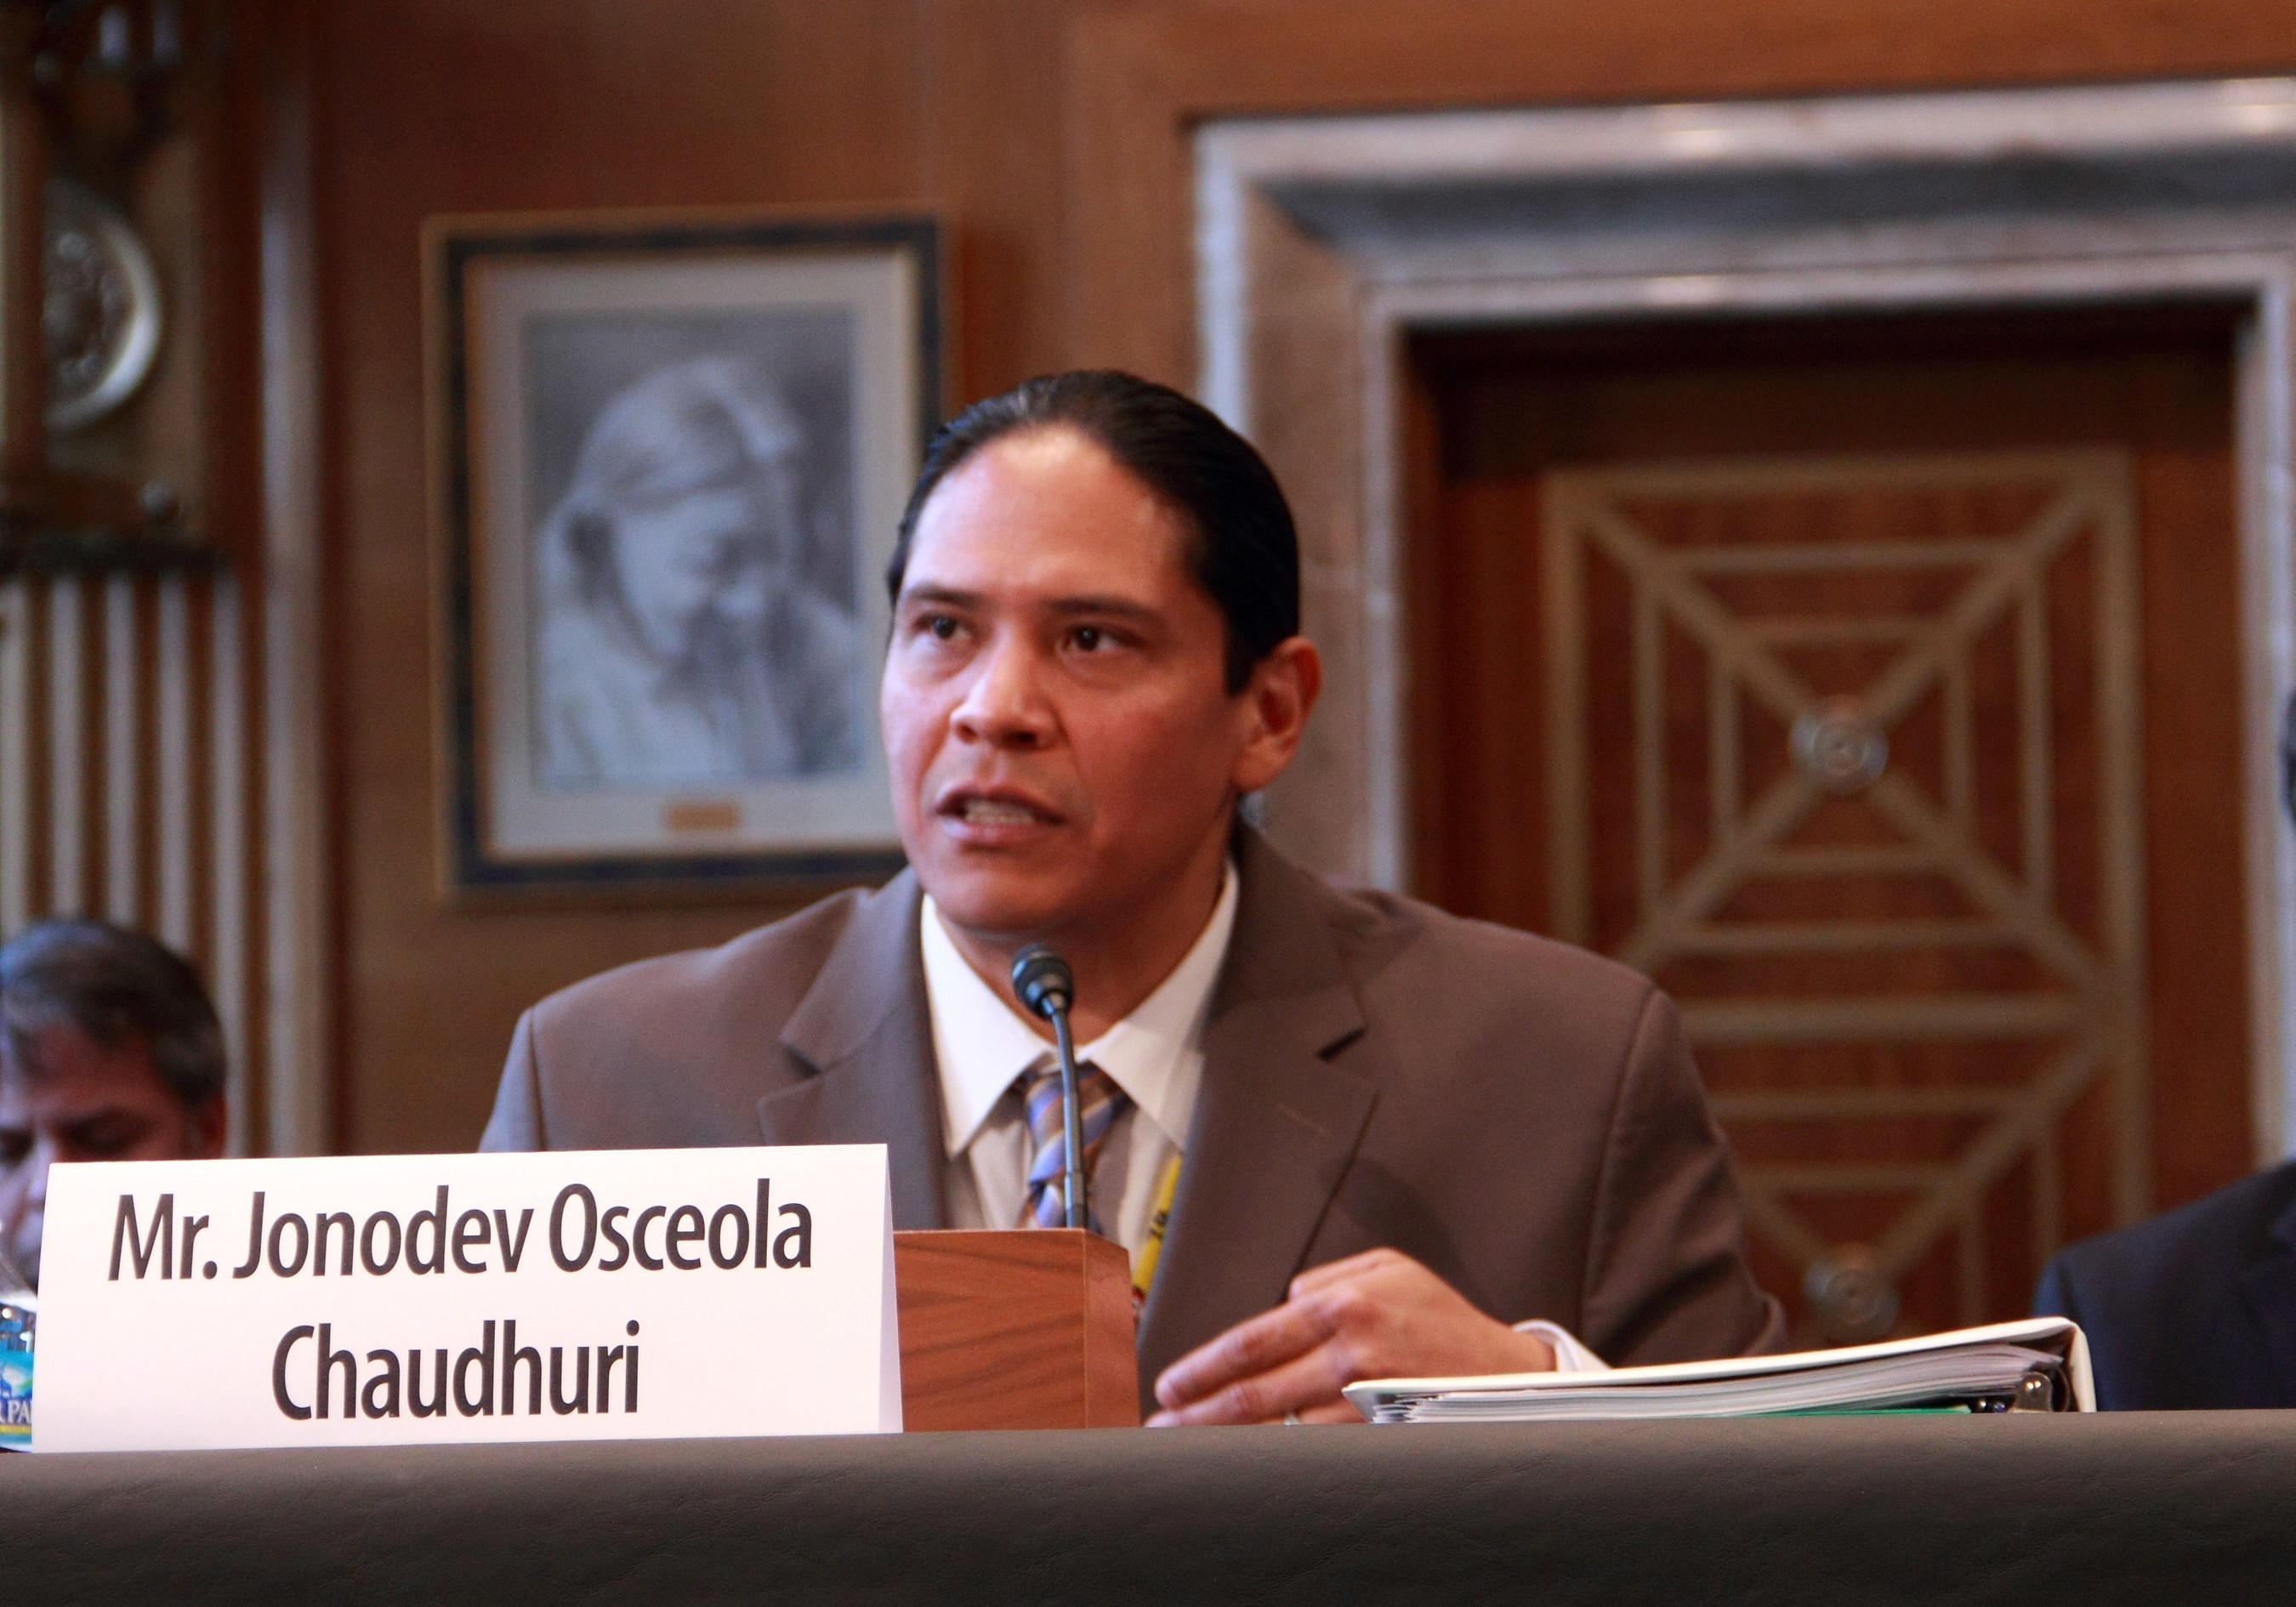 Jonodev Chaudhuri, President Obama's nominee for Chairman of the National Indian Gaming Commission, testifies before the U.S. Senate on Indian Affairs Committee at his nomination hearing March 11, 2015.  Chaudhuri was confirmed by the Senate April 16, 2015 as the ninth presidentially appointed and Senate-Confirmed Chair for the Indian gaming regulatory agency.